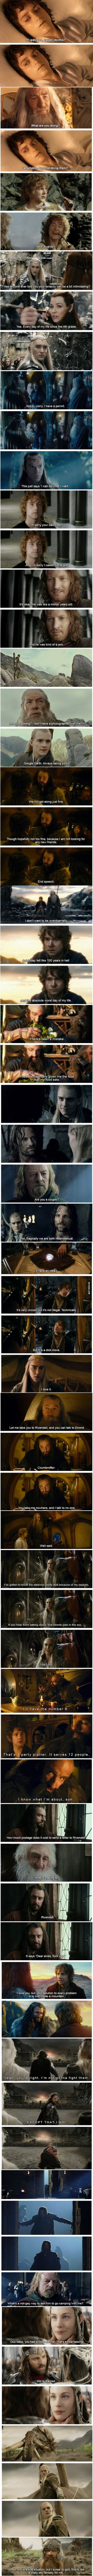 Lord of the Rings and Recreation